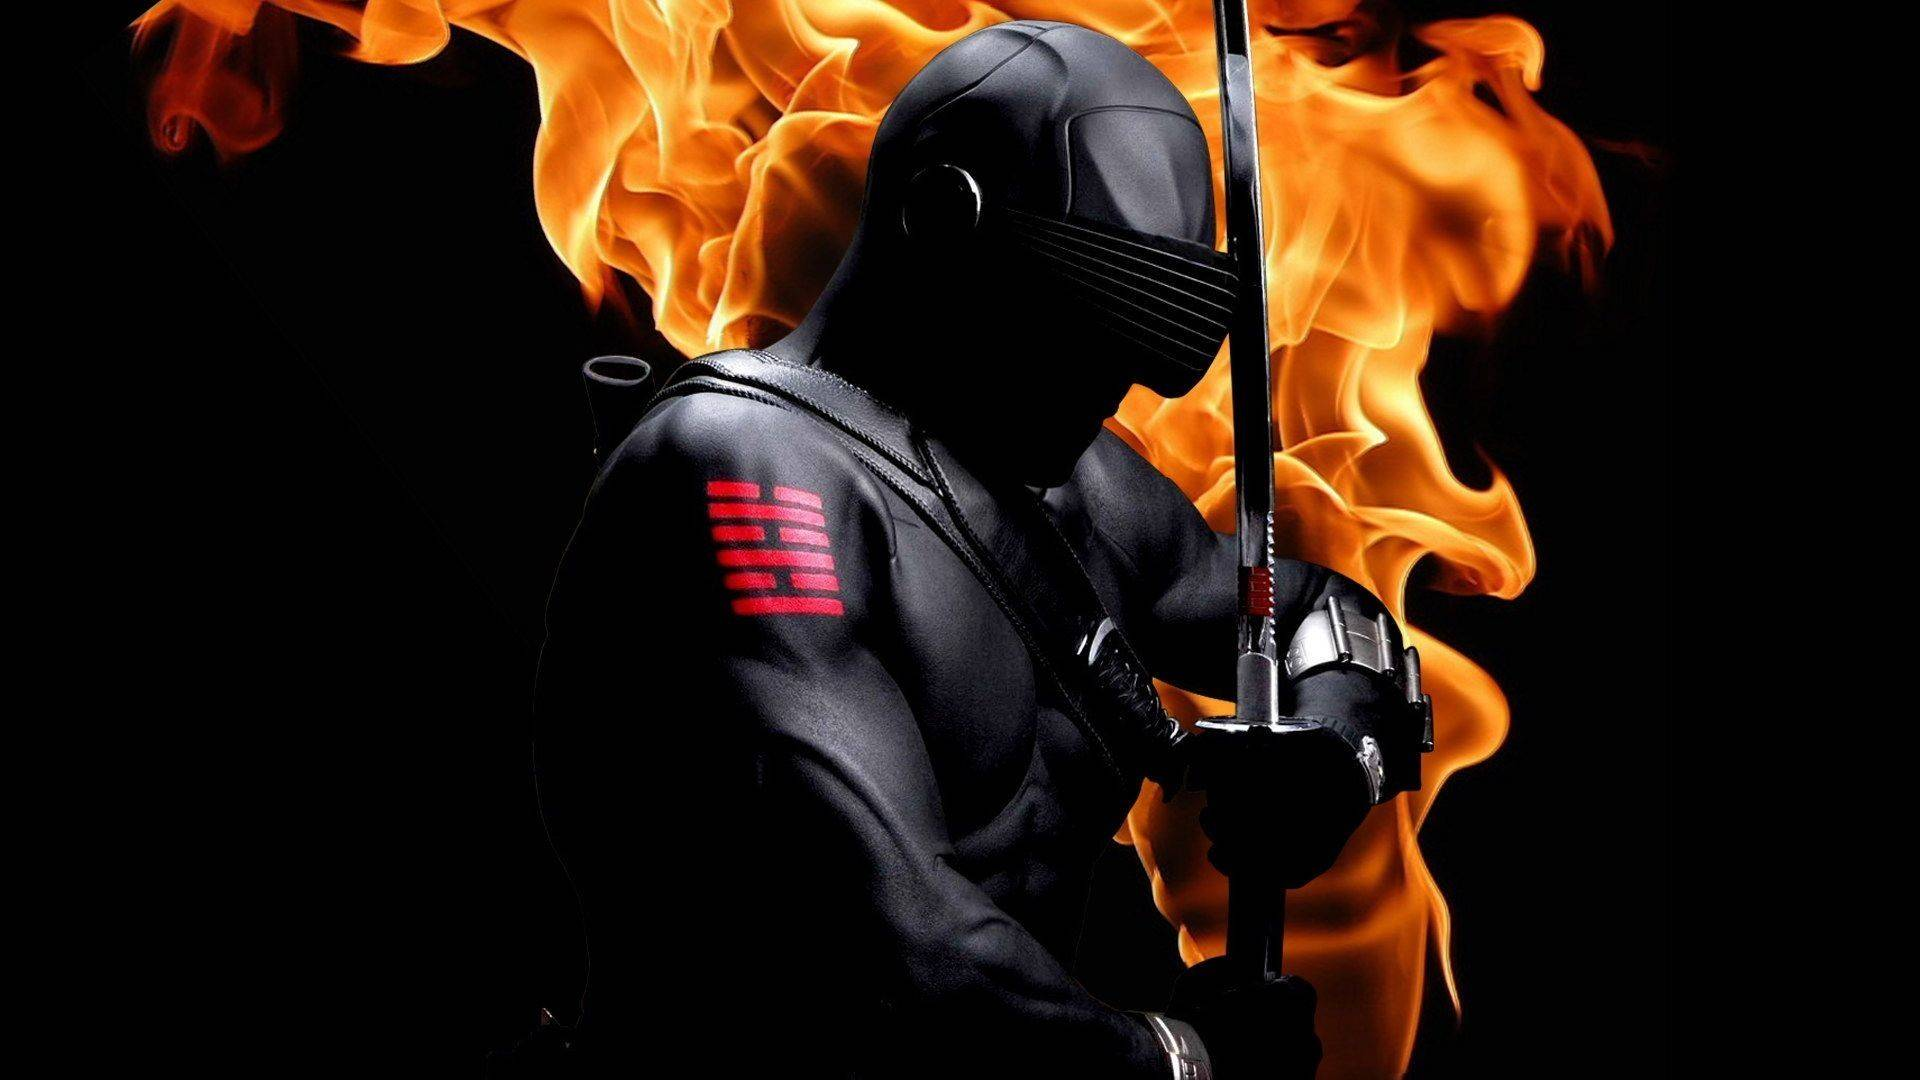 Snake Eyes GI Joe With Sword On Fire